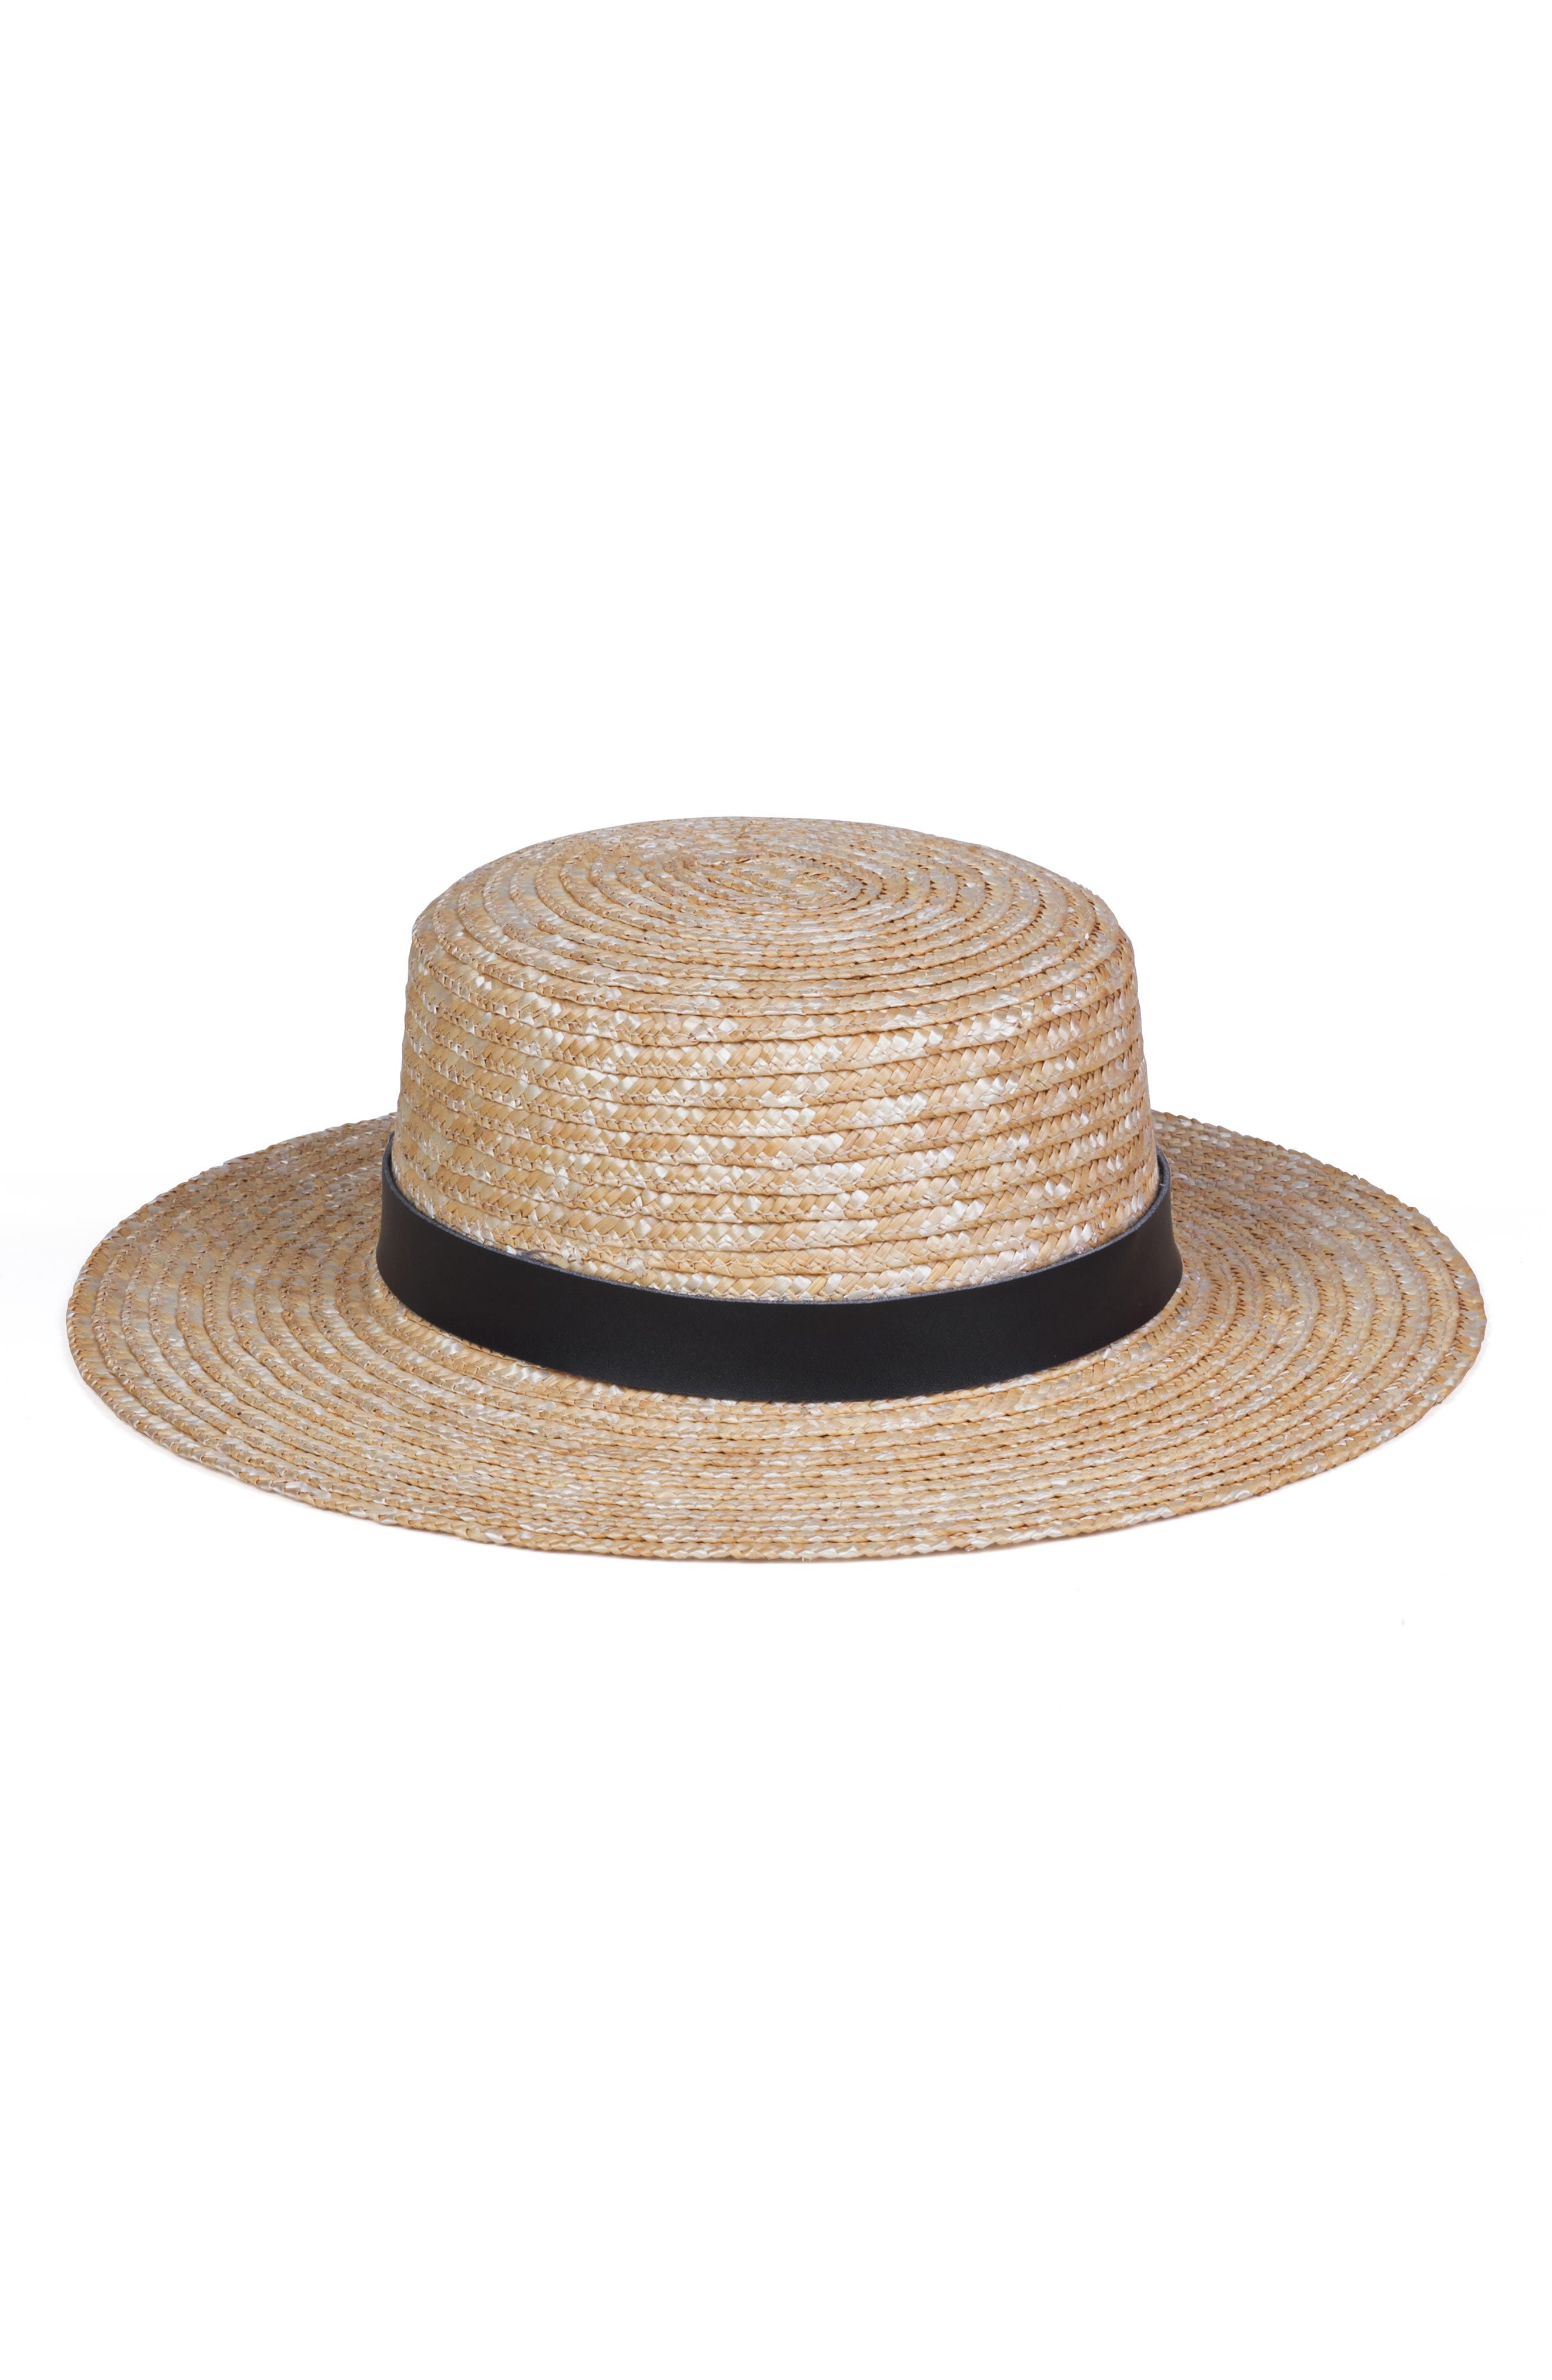 The Spencer Straw Boater Hat